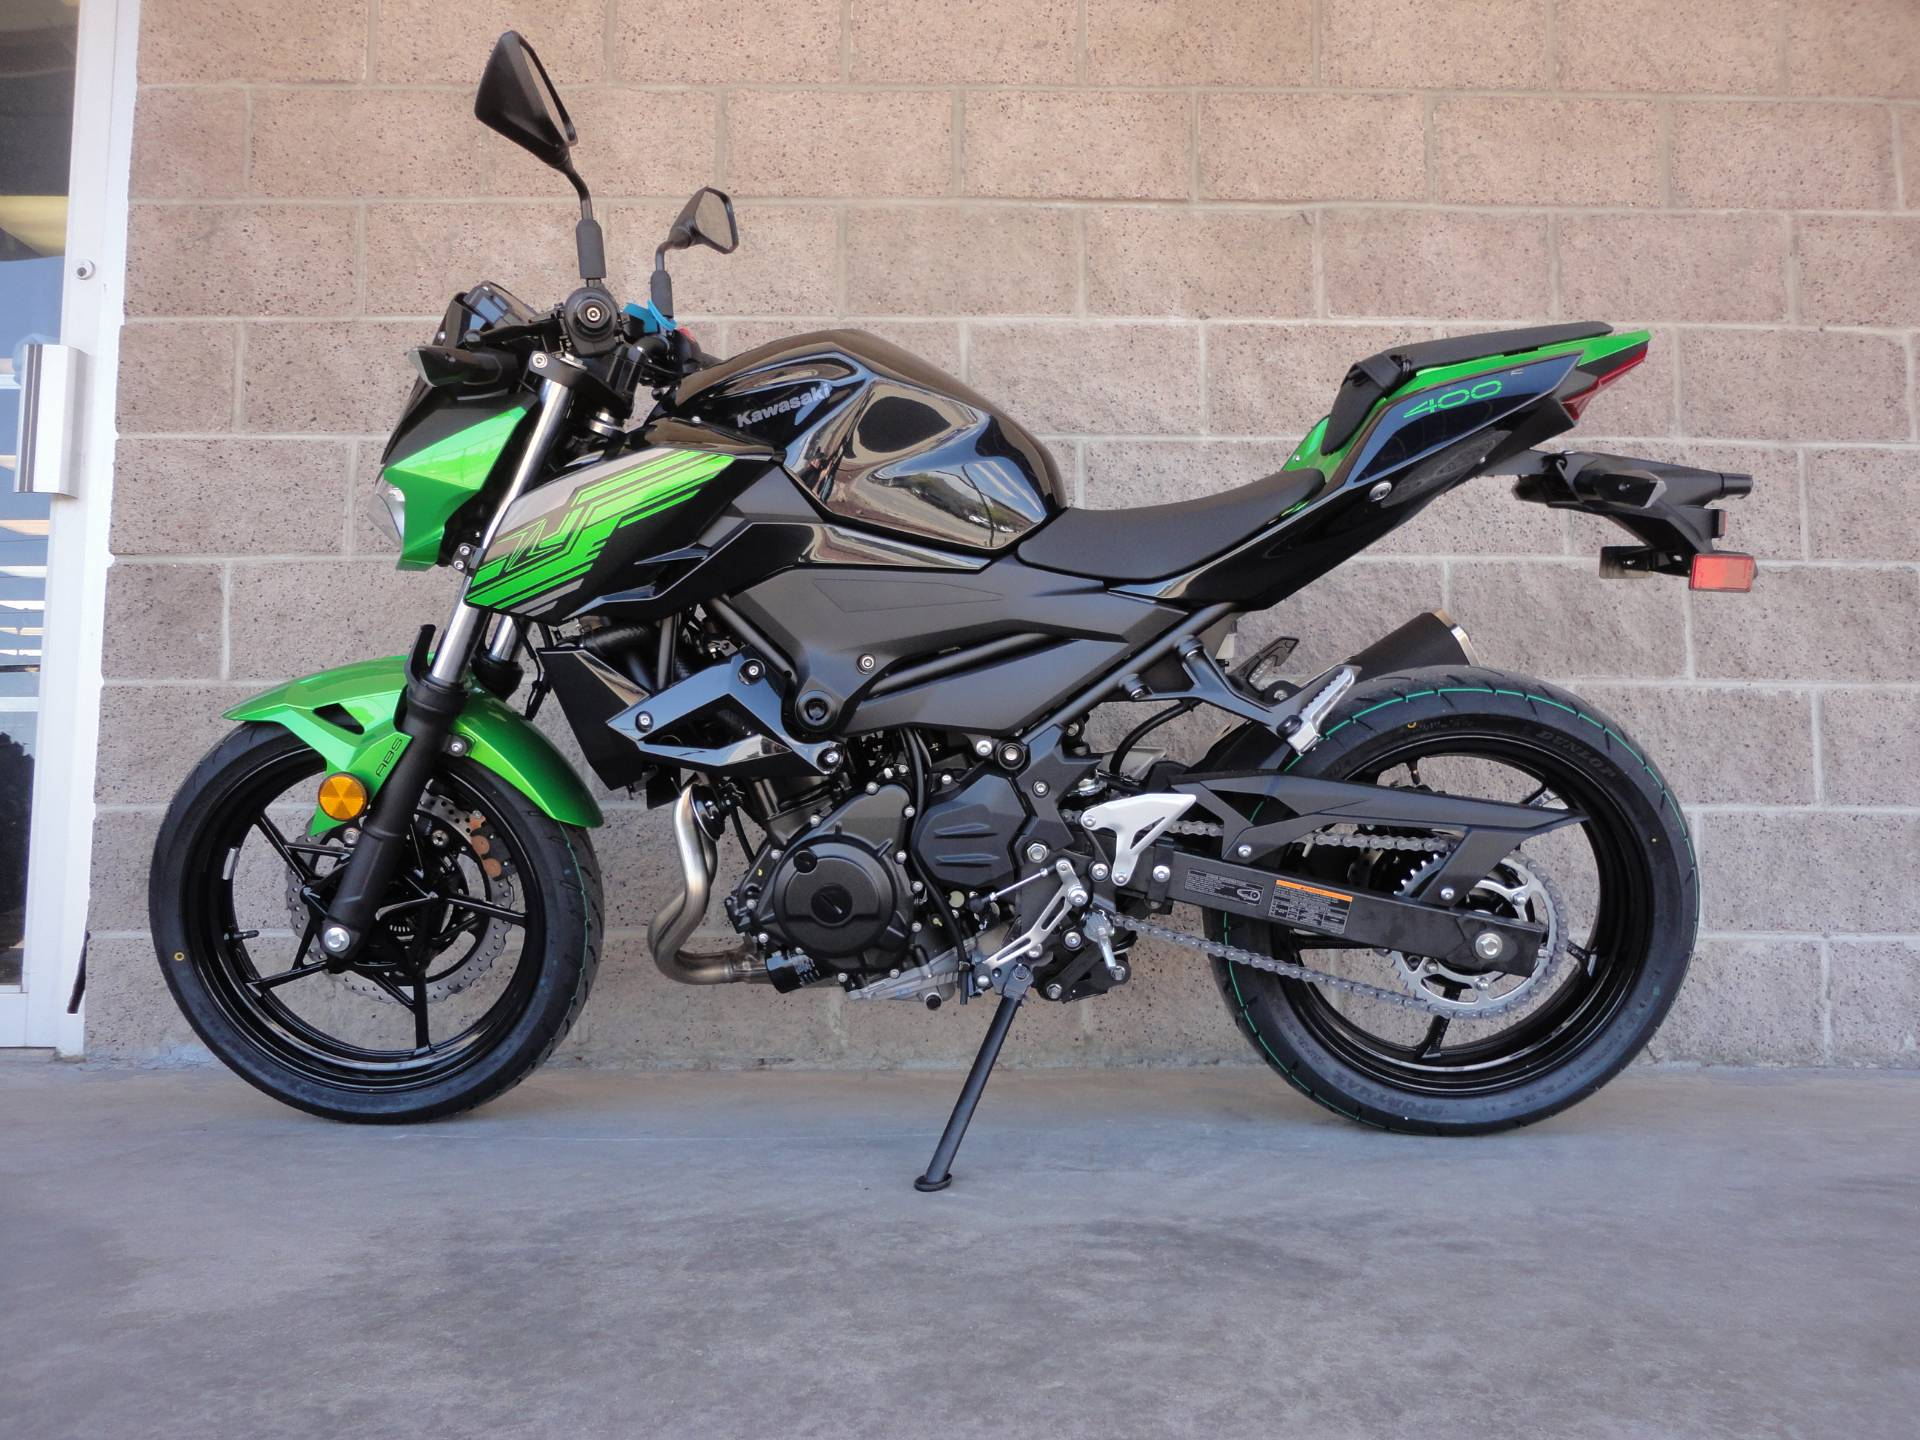 2019 Kawasaki Z400 ABS in Denver, Colorado - Photo 2